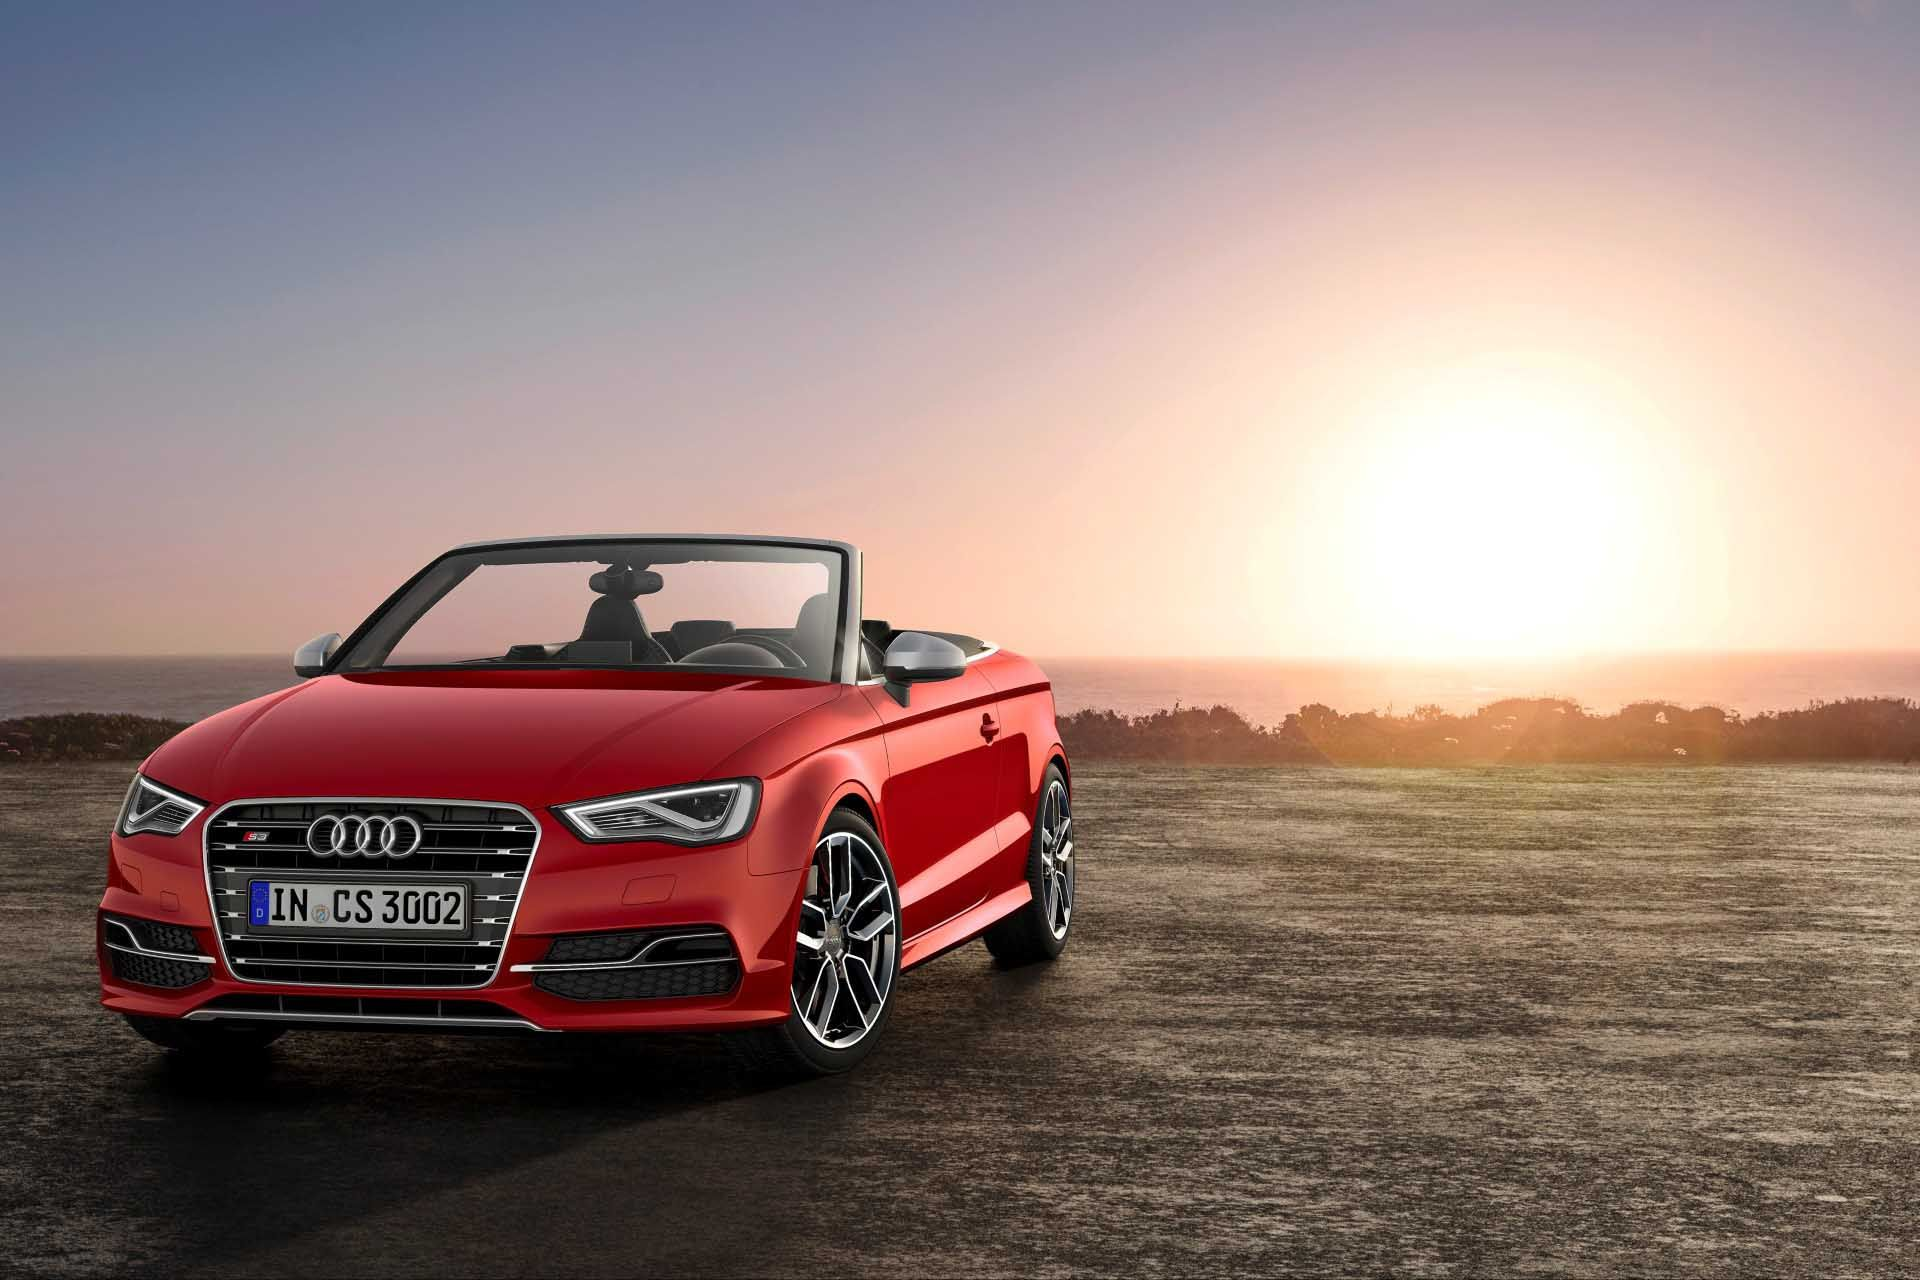 10 Attractive Audi S3 Cabriolet Front View Wallpapers Aston Martin Audi Modelauto